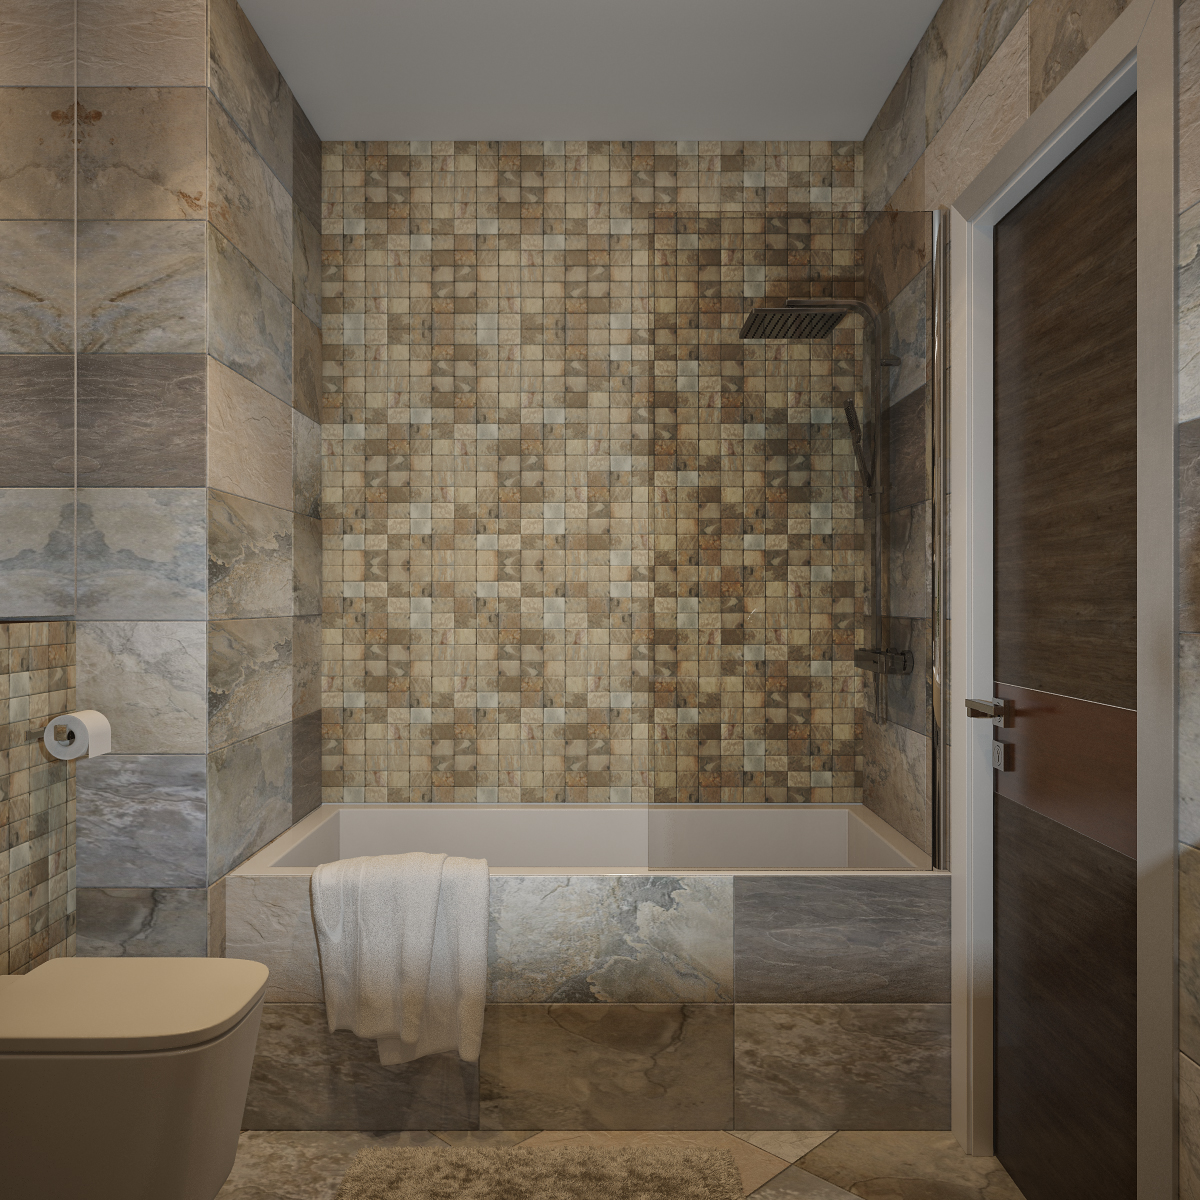 mosaic bathroom remodeling altanta tile 2013 - Bathroom Designs With Mosaic Tiles